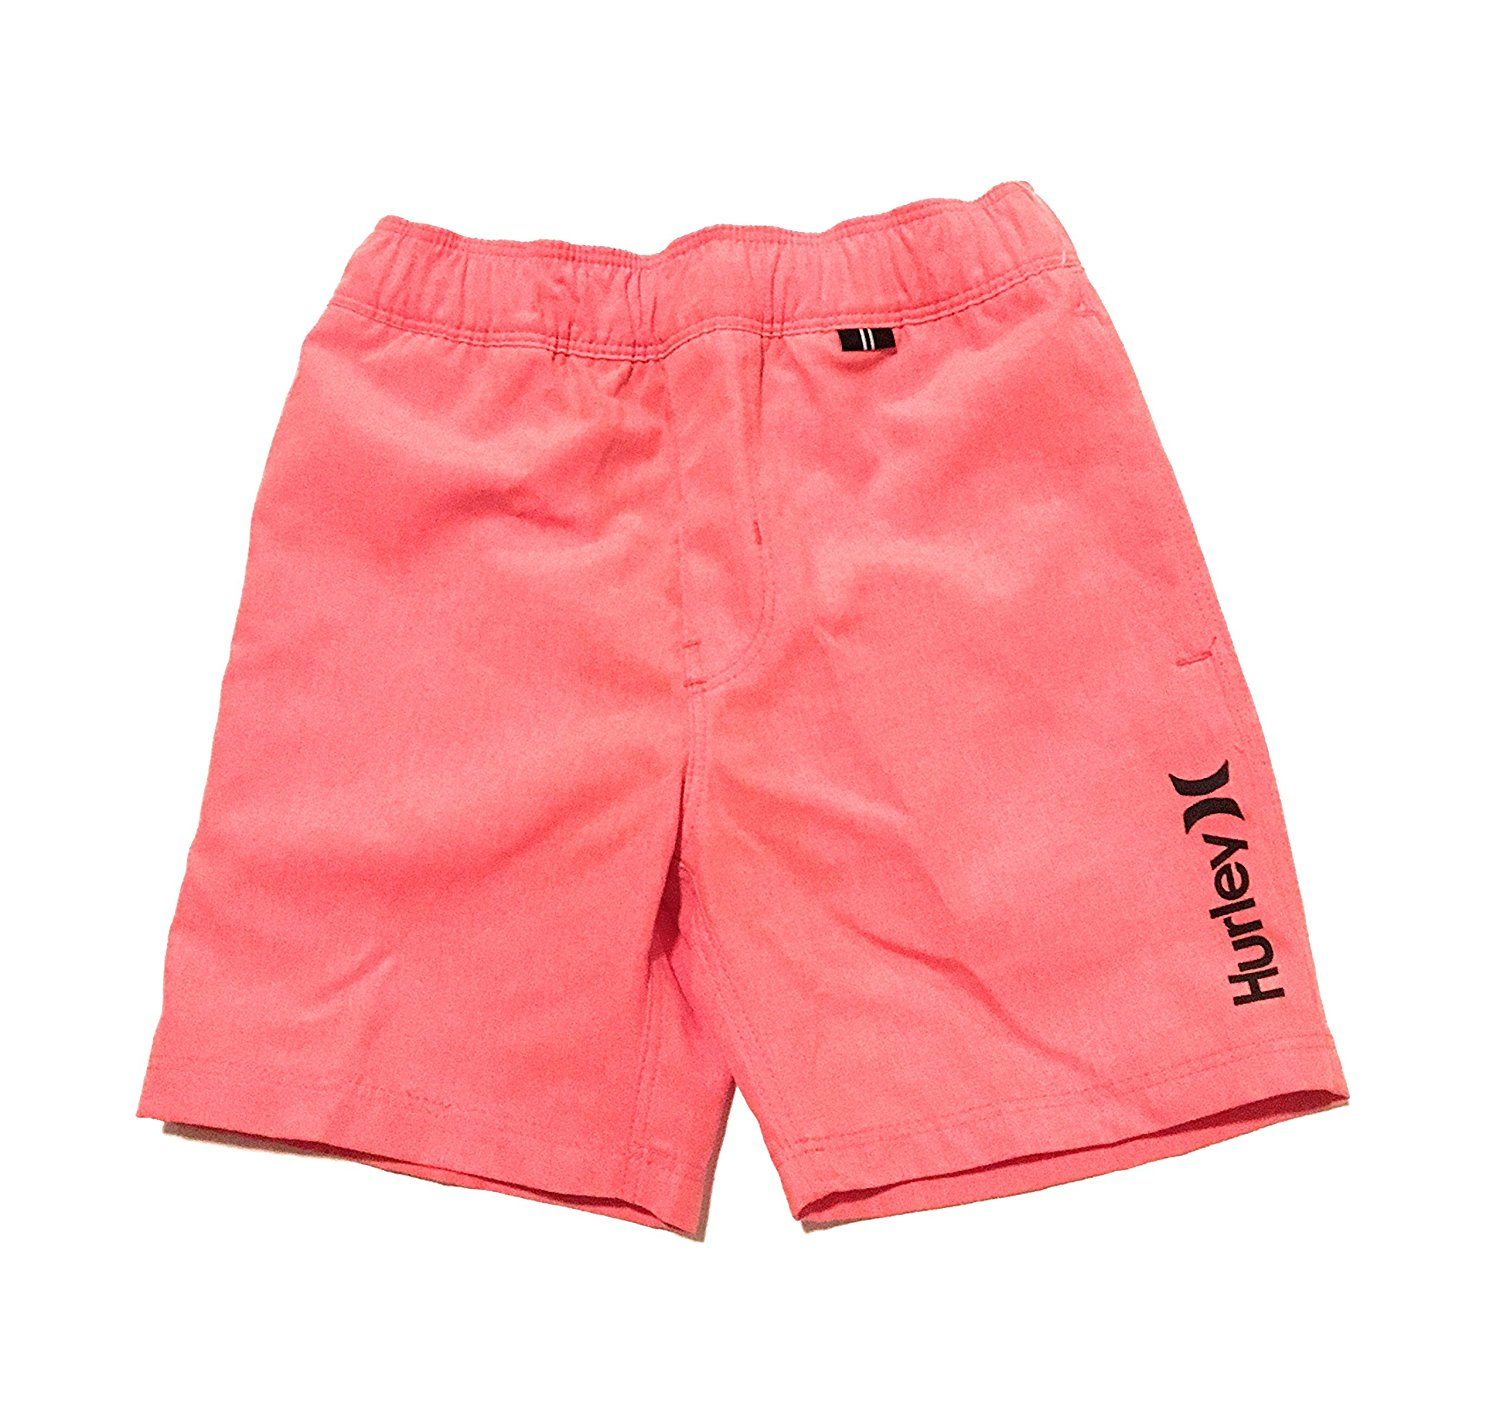 8cb9785fce Get Quotations · Hurley Little Boys Heathered Board Shorts Bright Crimson  Size 5